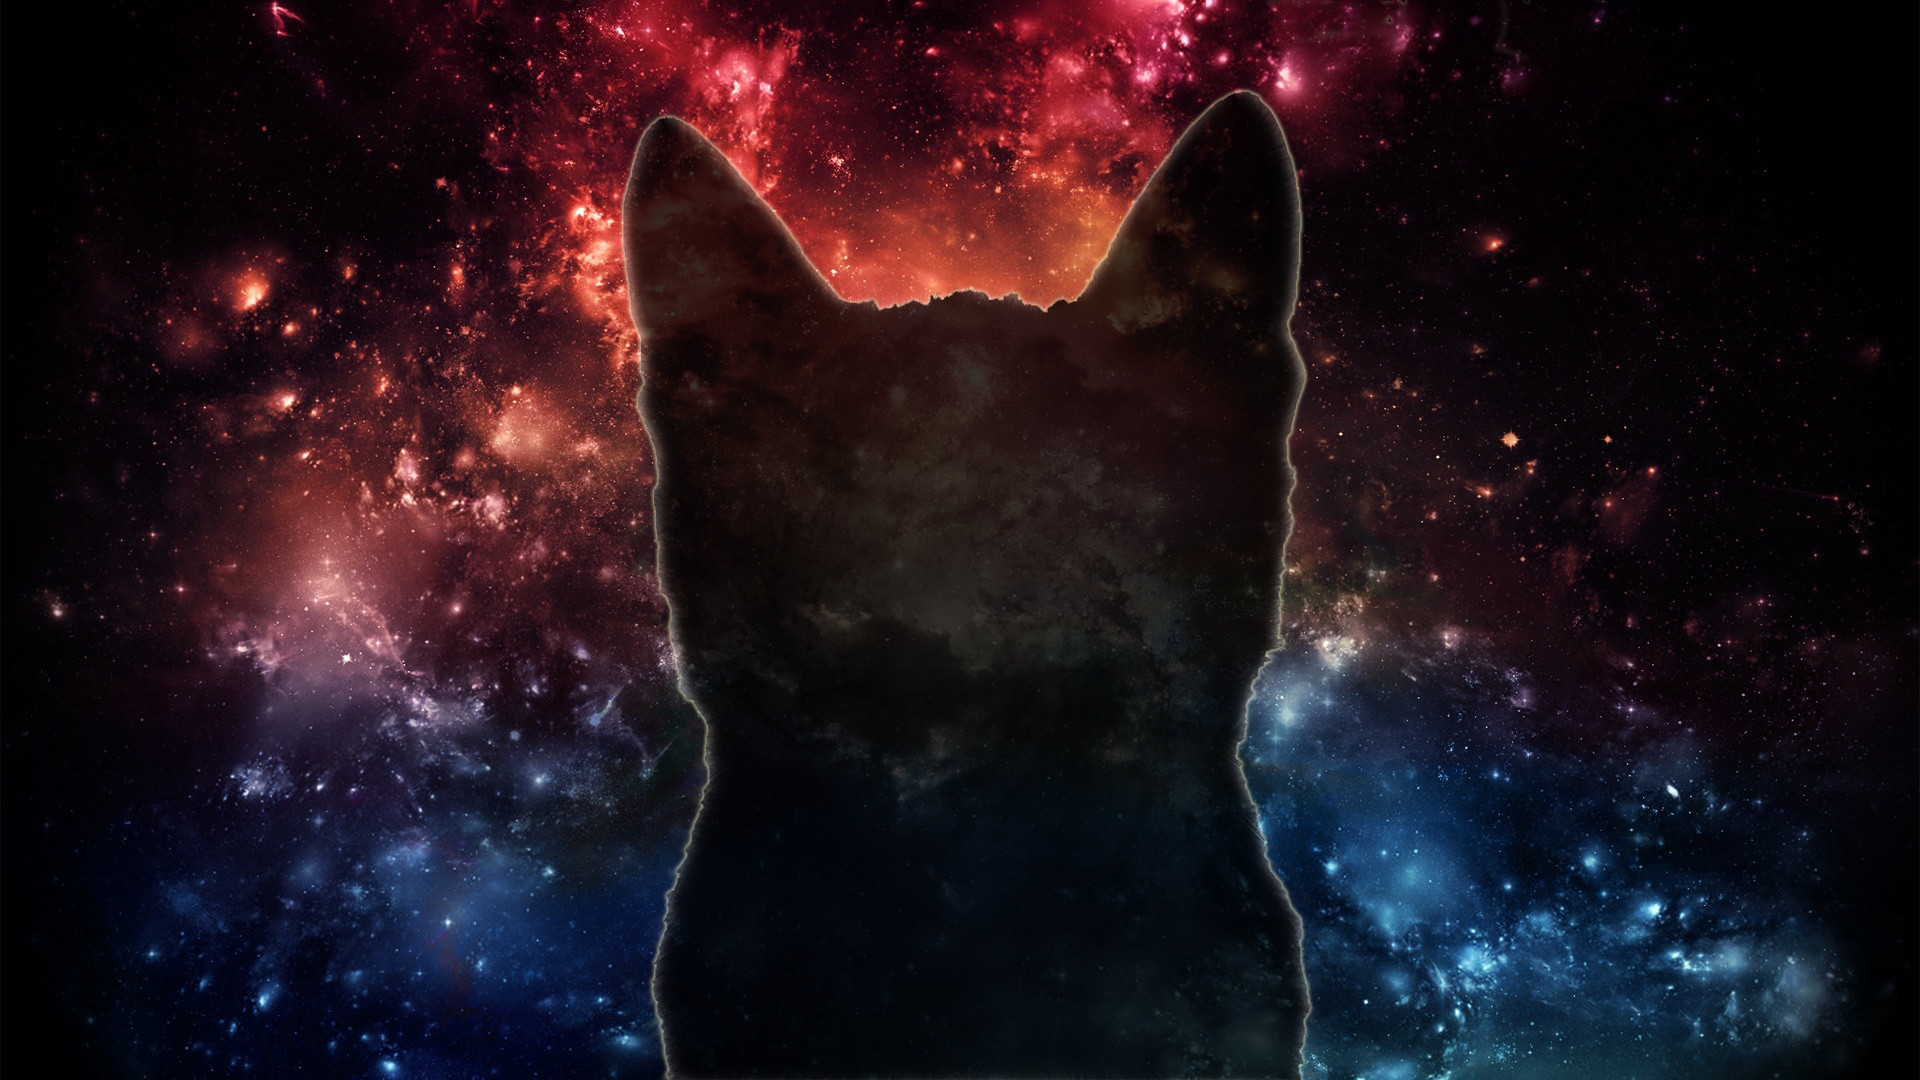 Space cats hd wallpaper 78 images - Space wallpaper 1920x1080 ...